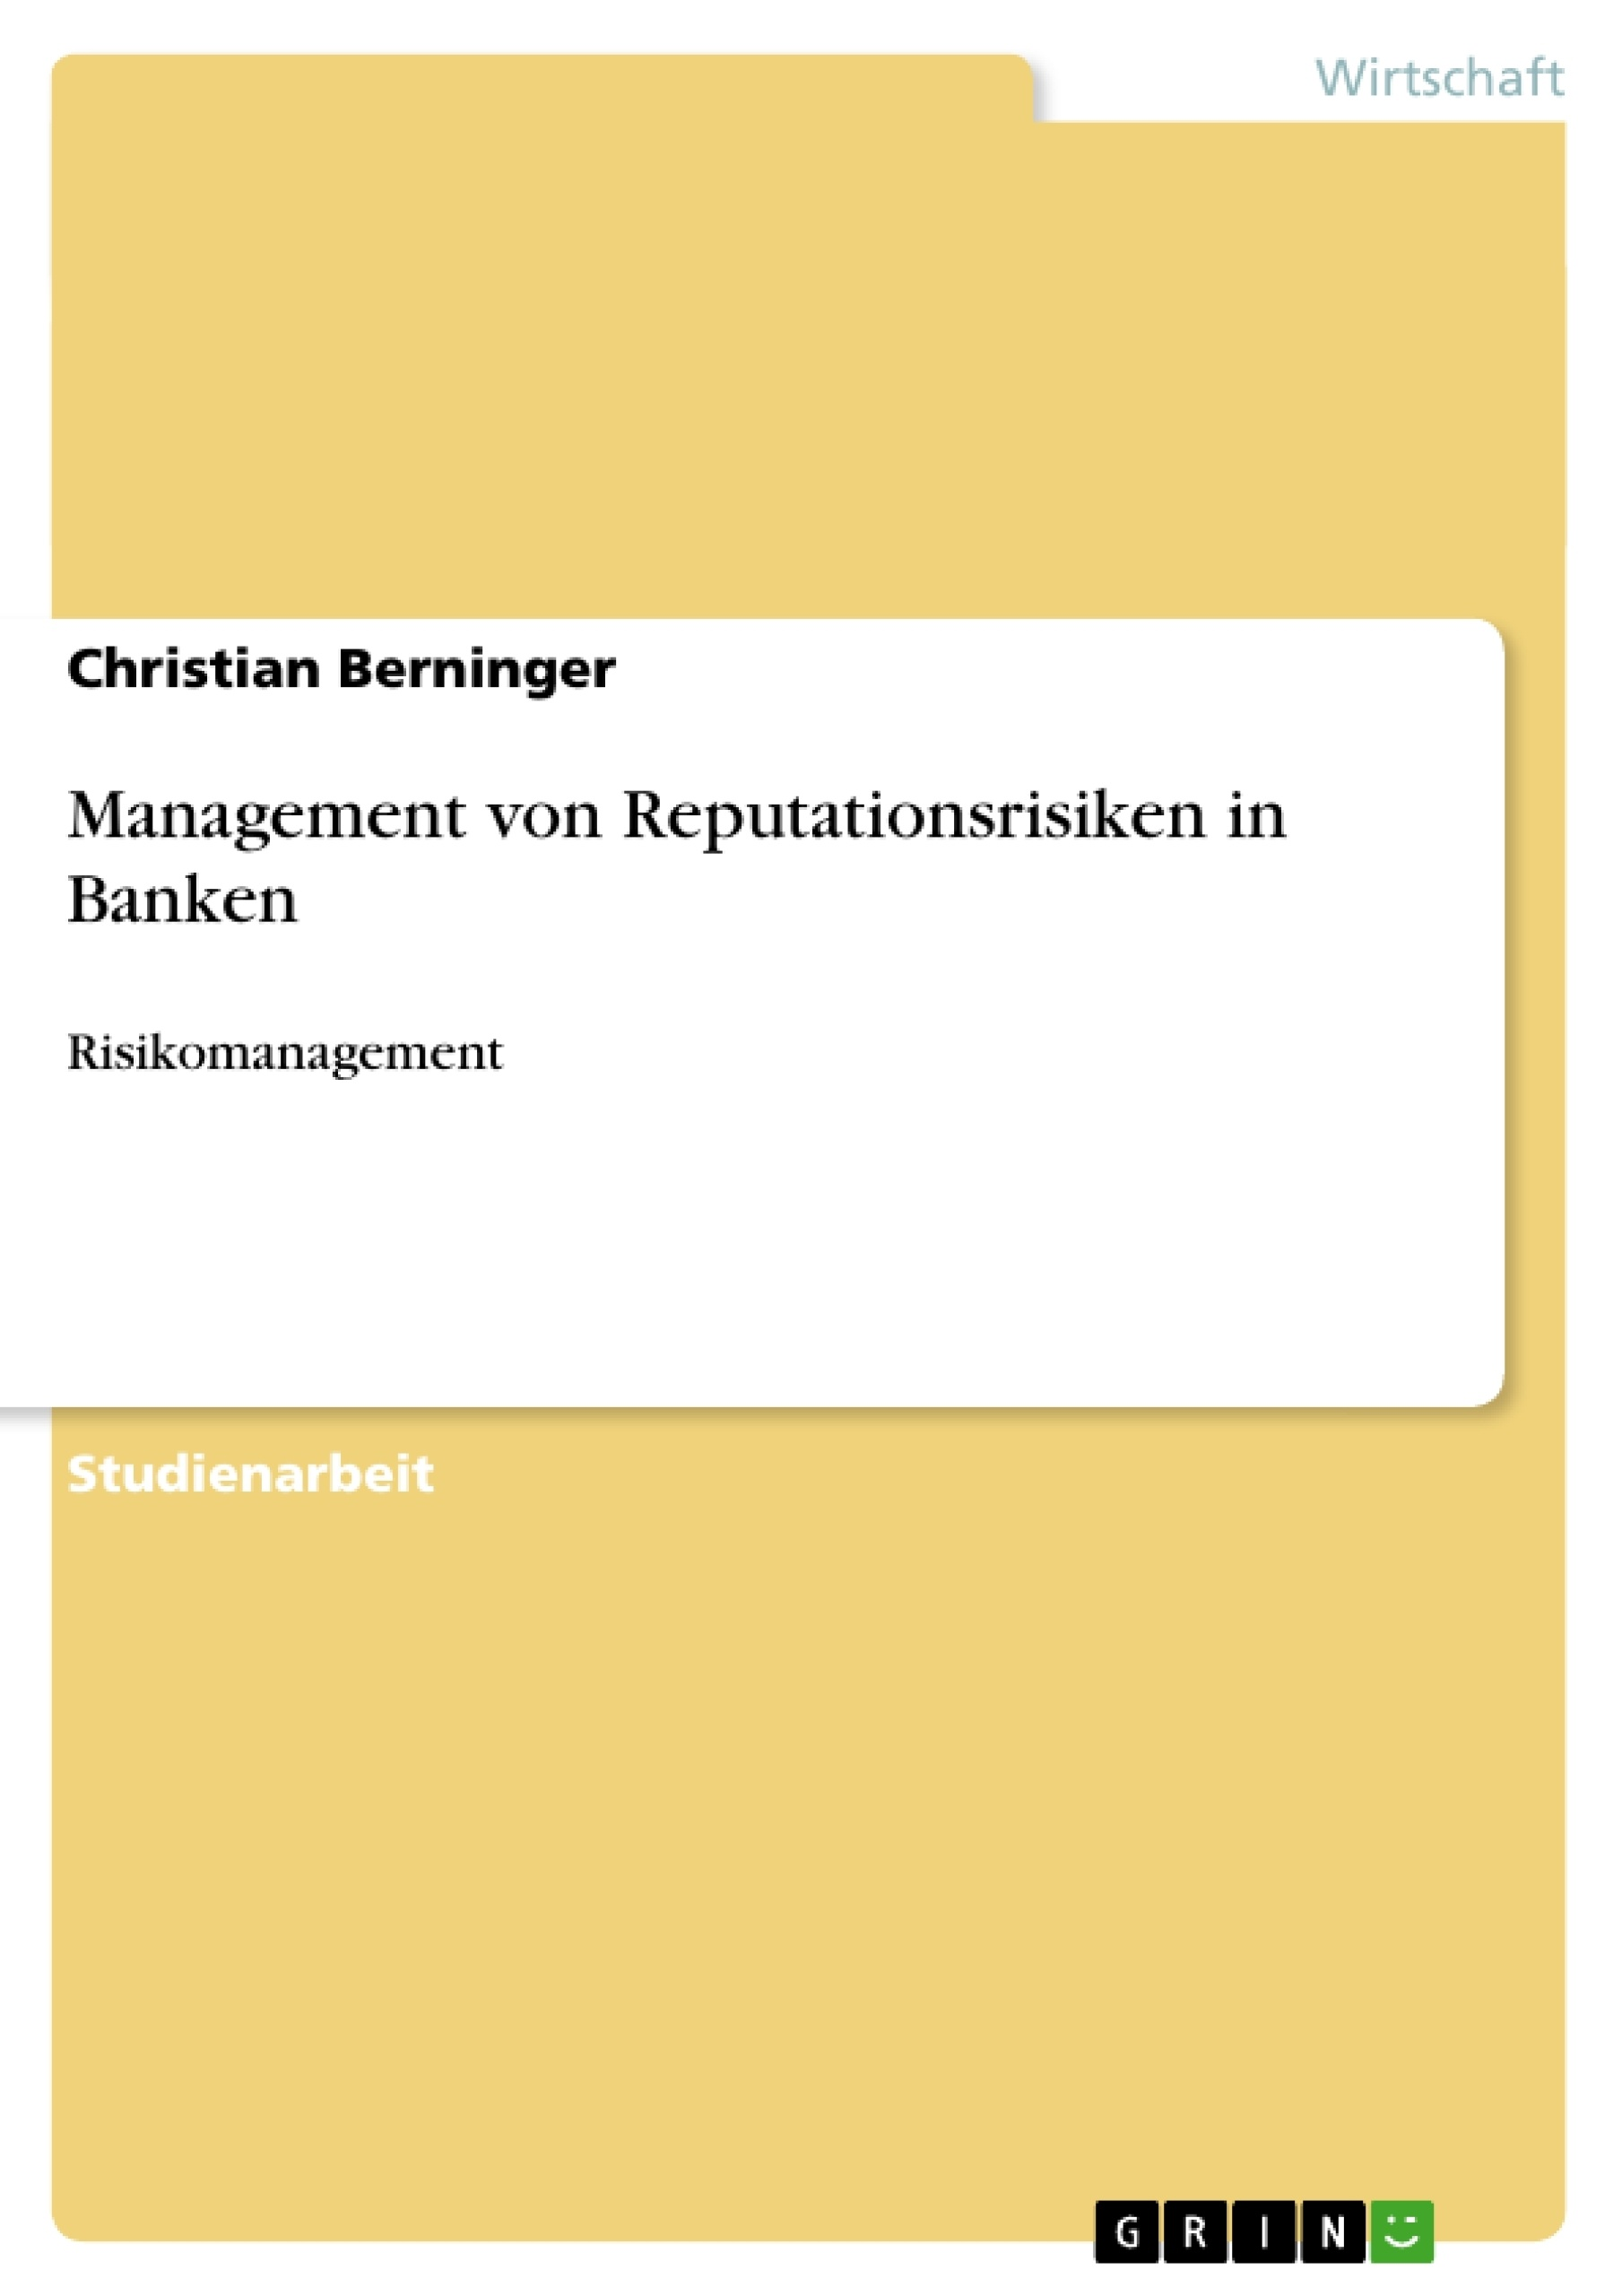 Titel: Management von Reputationsrisiken in Banken